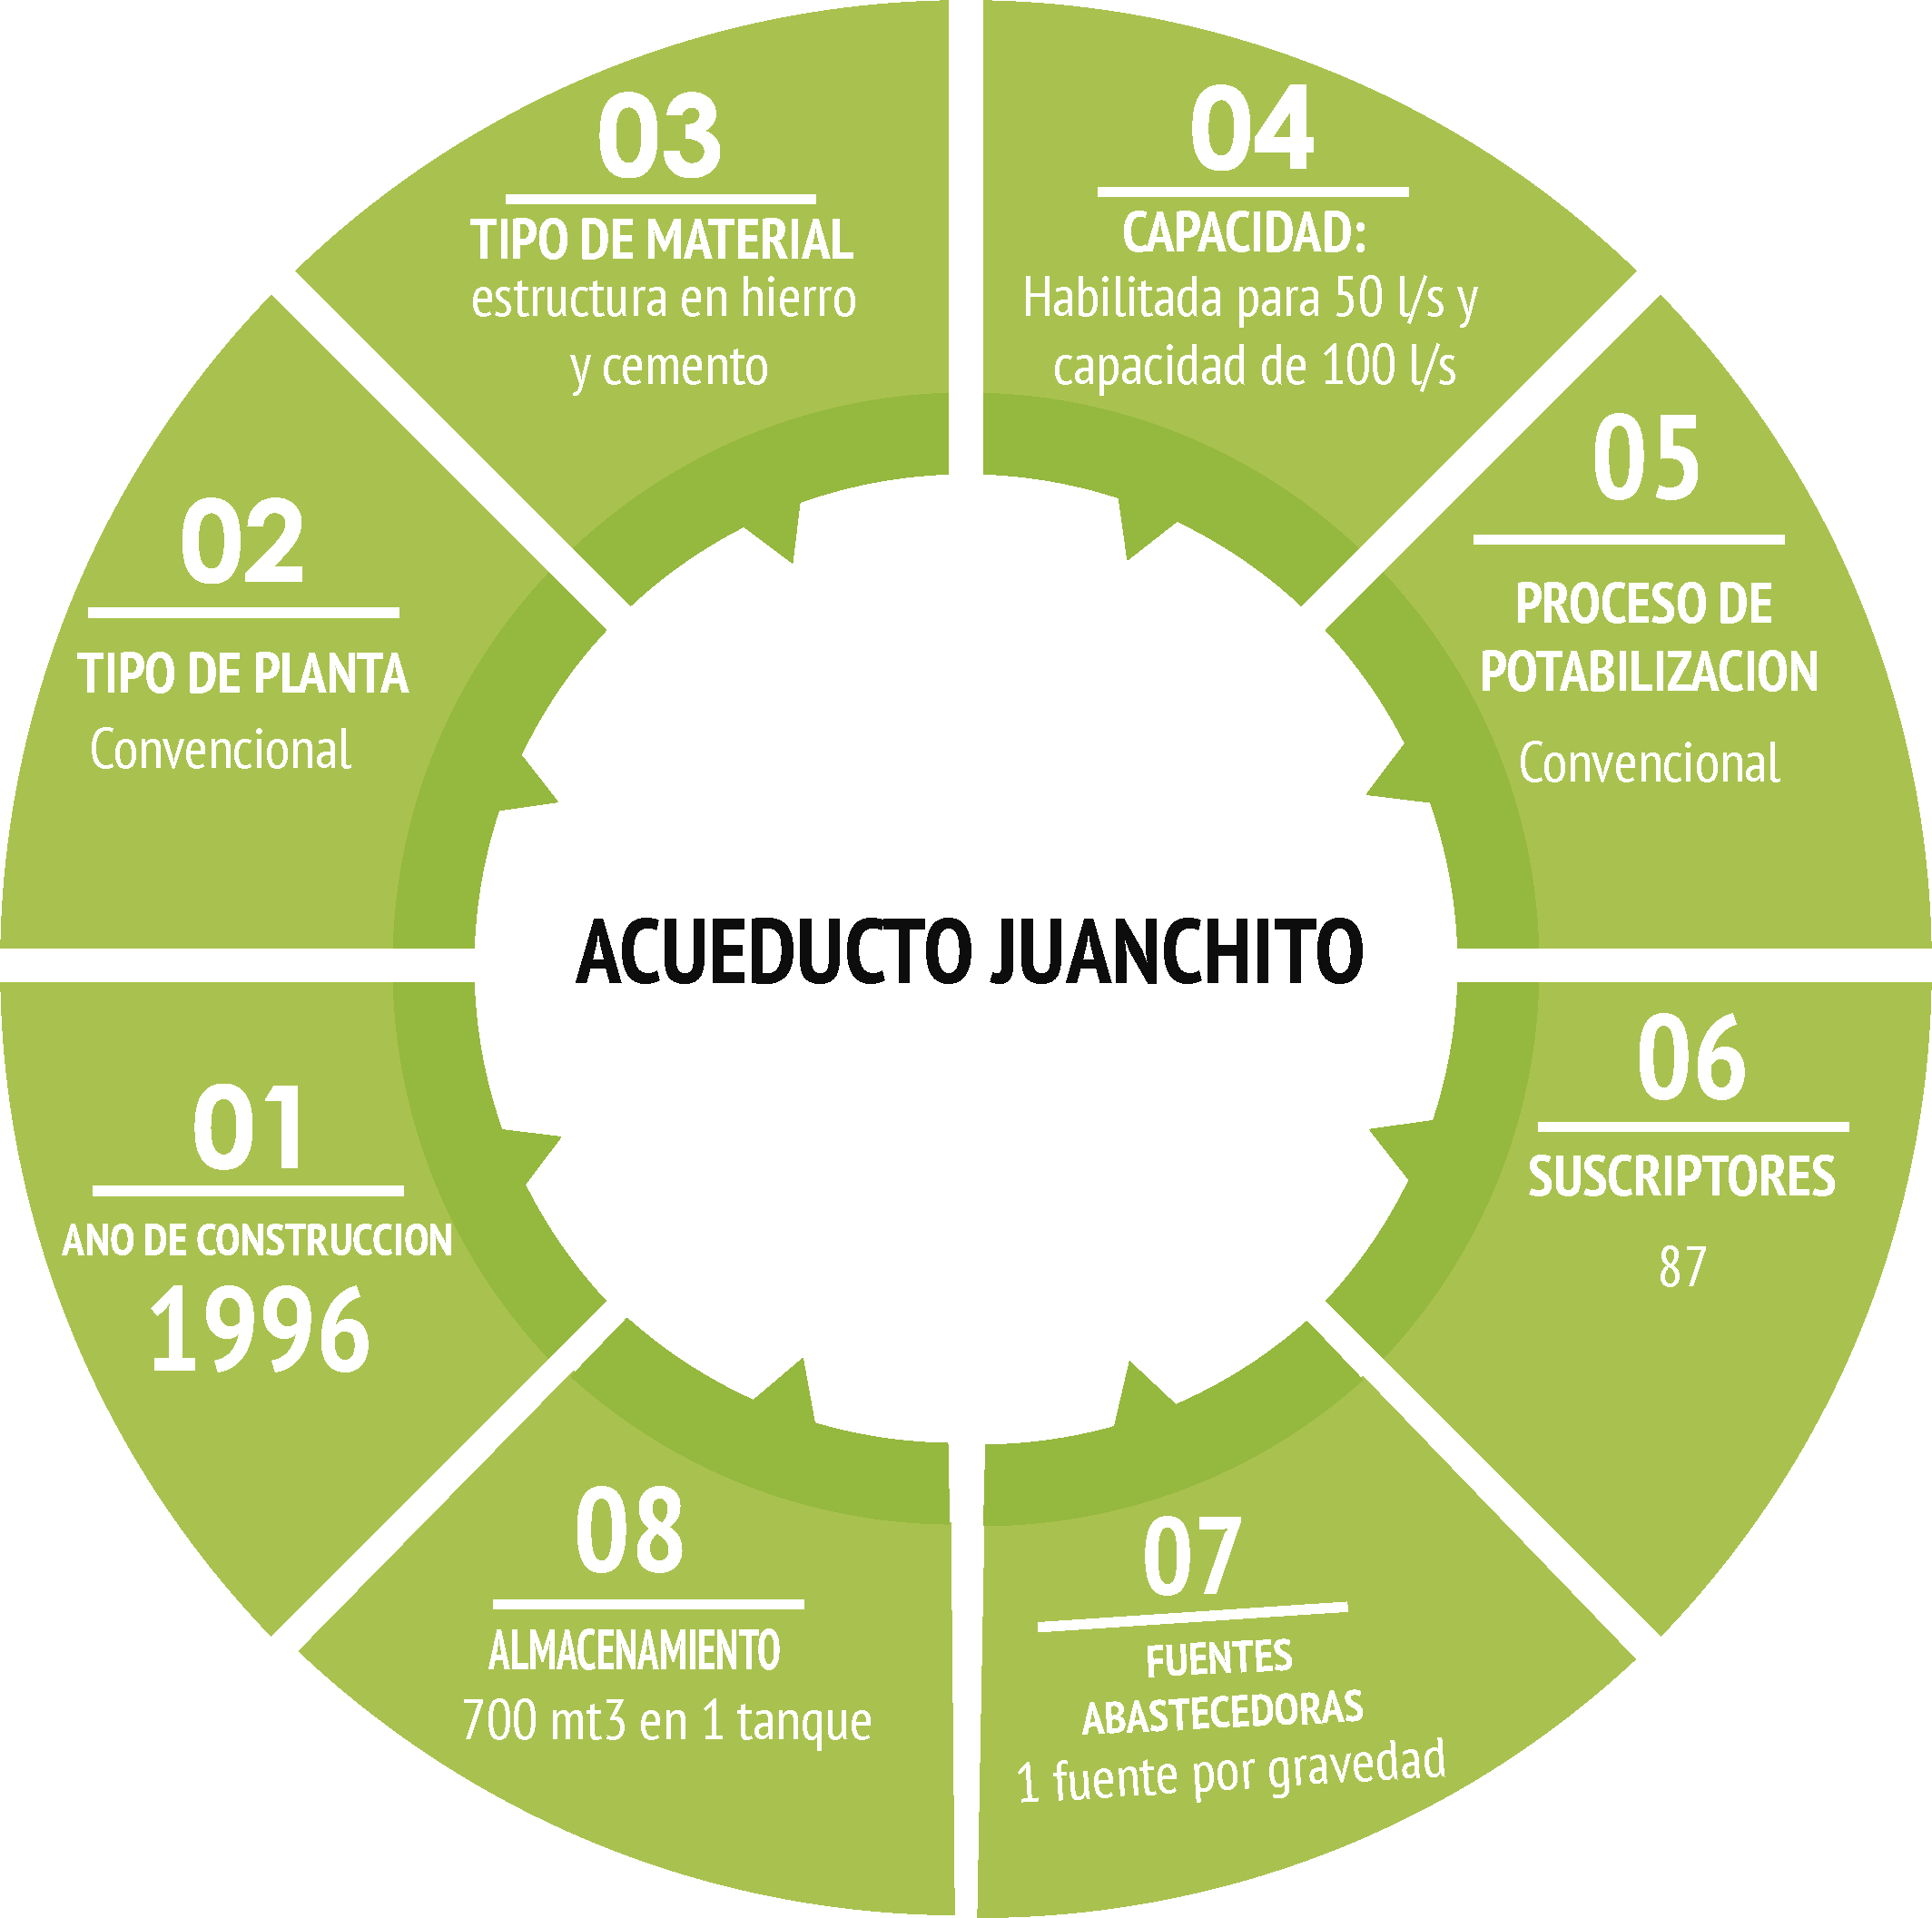 grafica juanchito